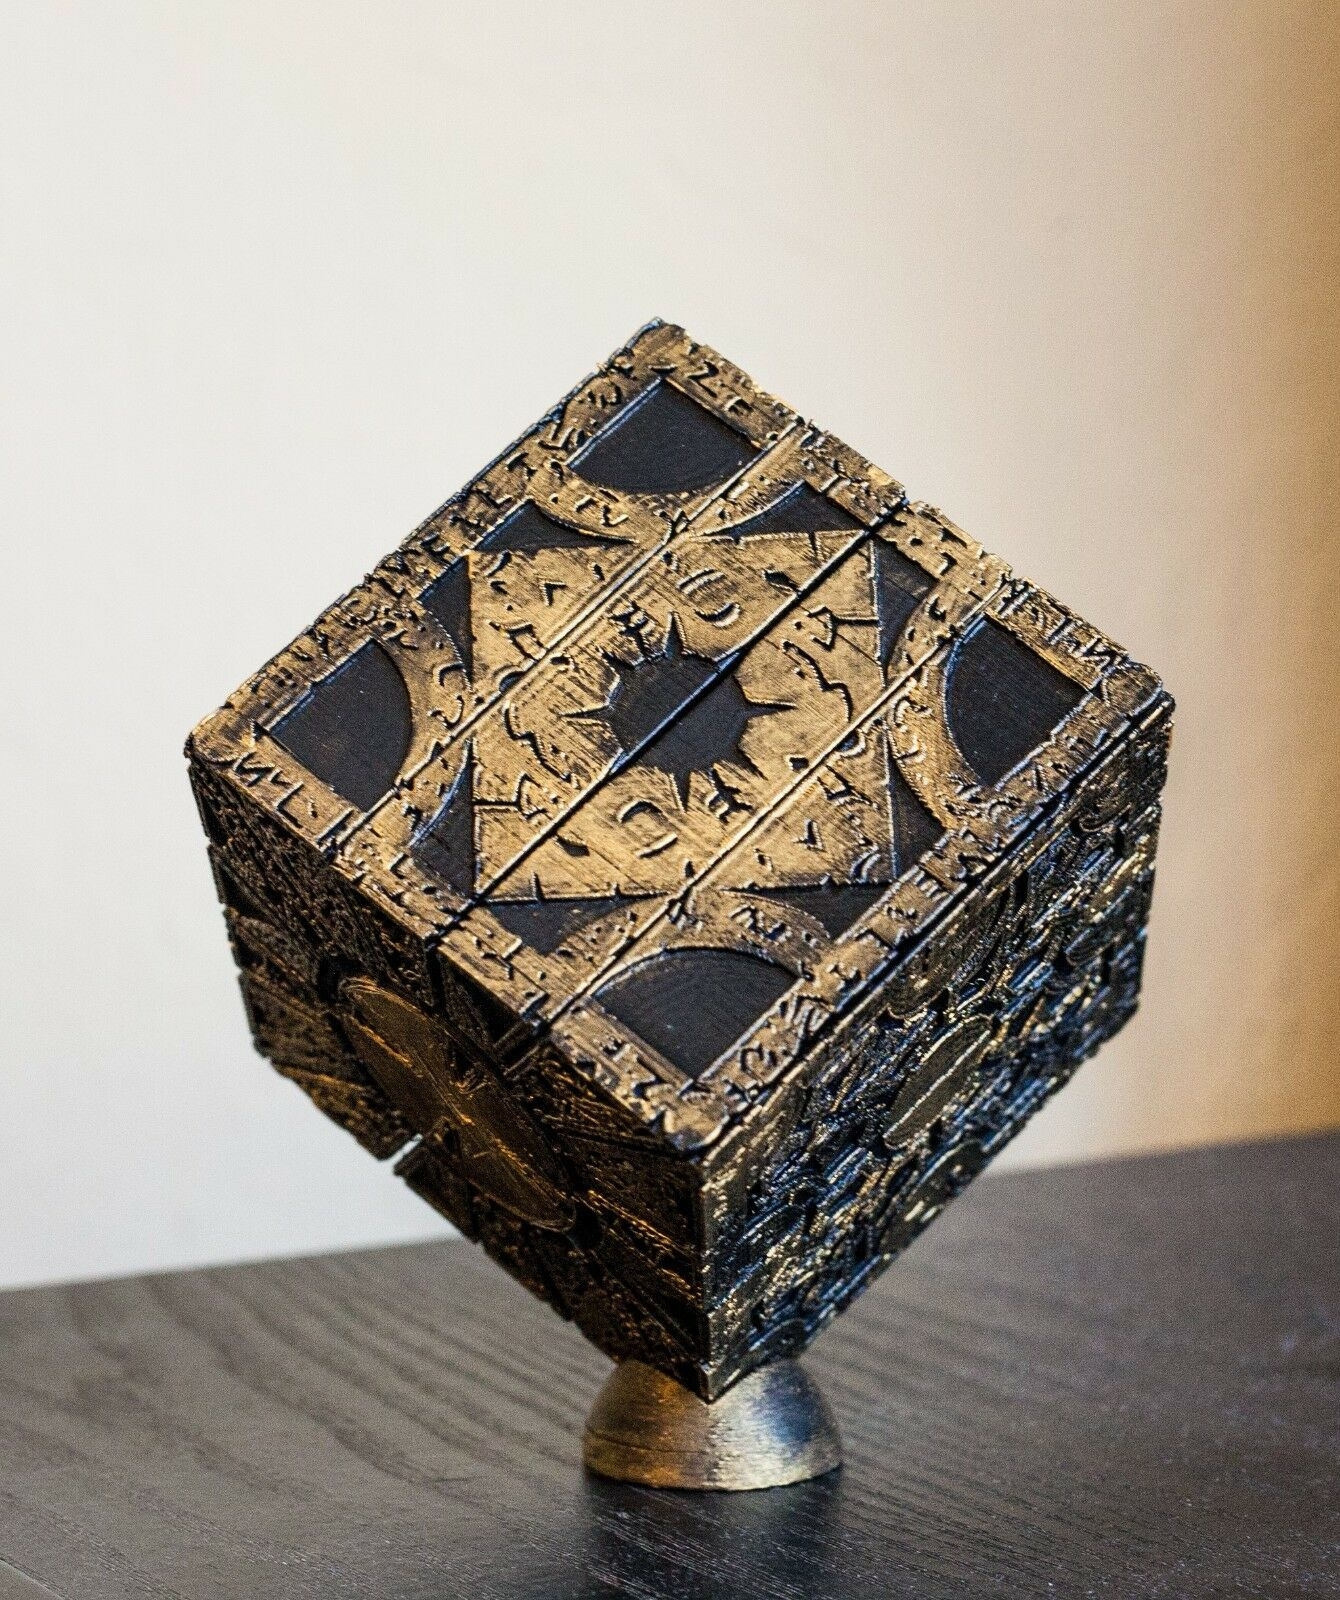 Hellraiser Puzzle scatola Lemarche'S scatola 3d  printed ropeo Concifration  vendite online